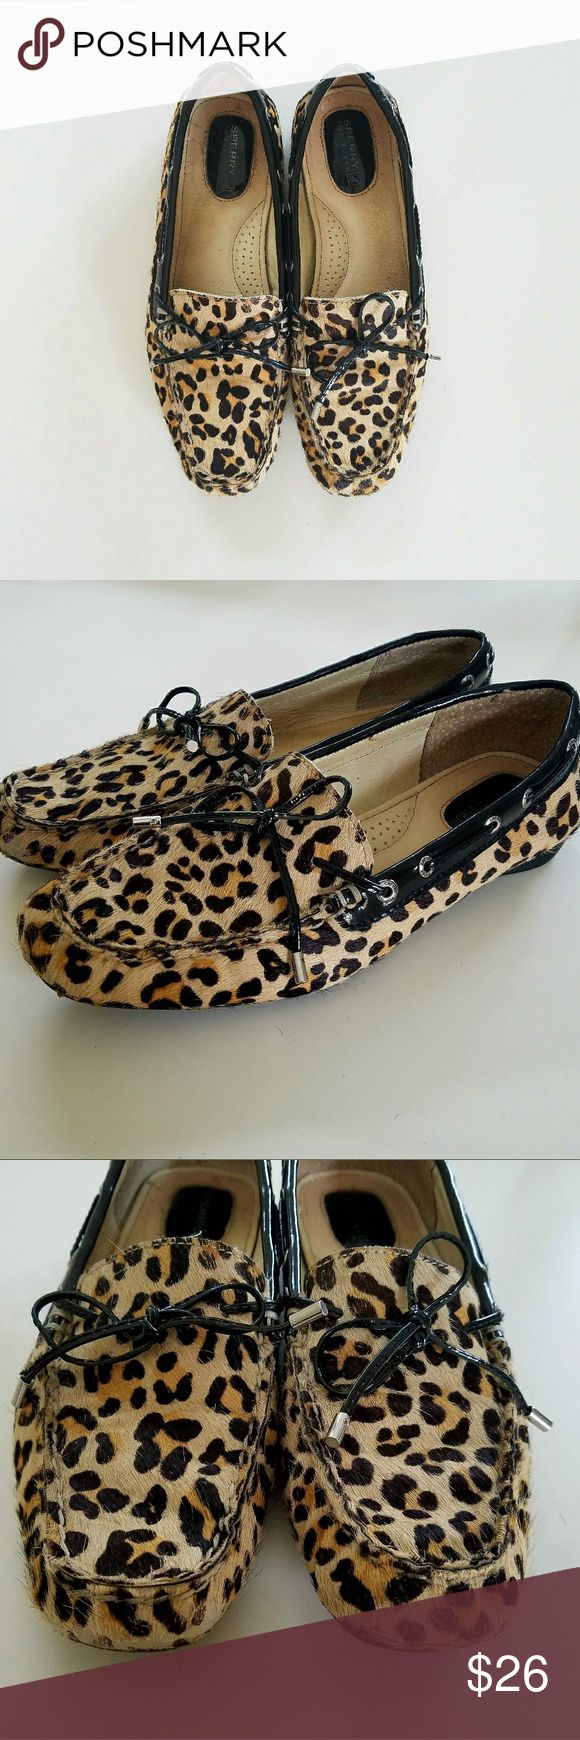 💜💜LEOPARD SPERRY💜💜 A cute leopard shoes, love used in good conditions Sperry Shoes Flats & Loafers